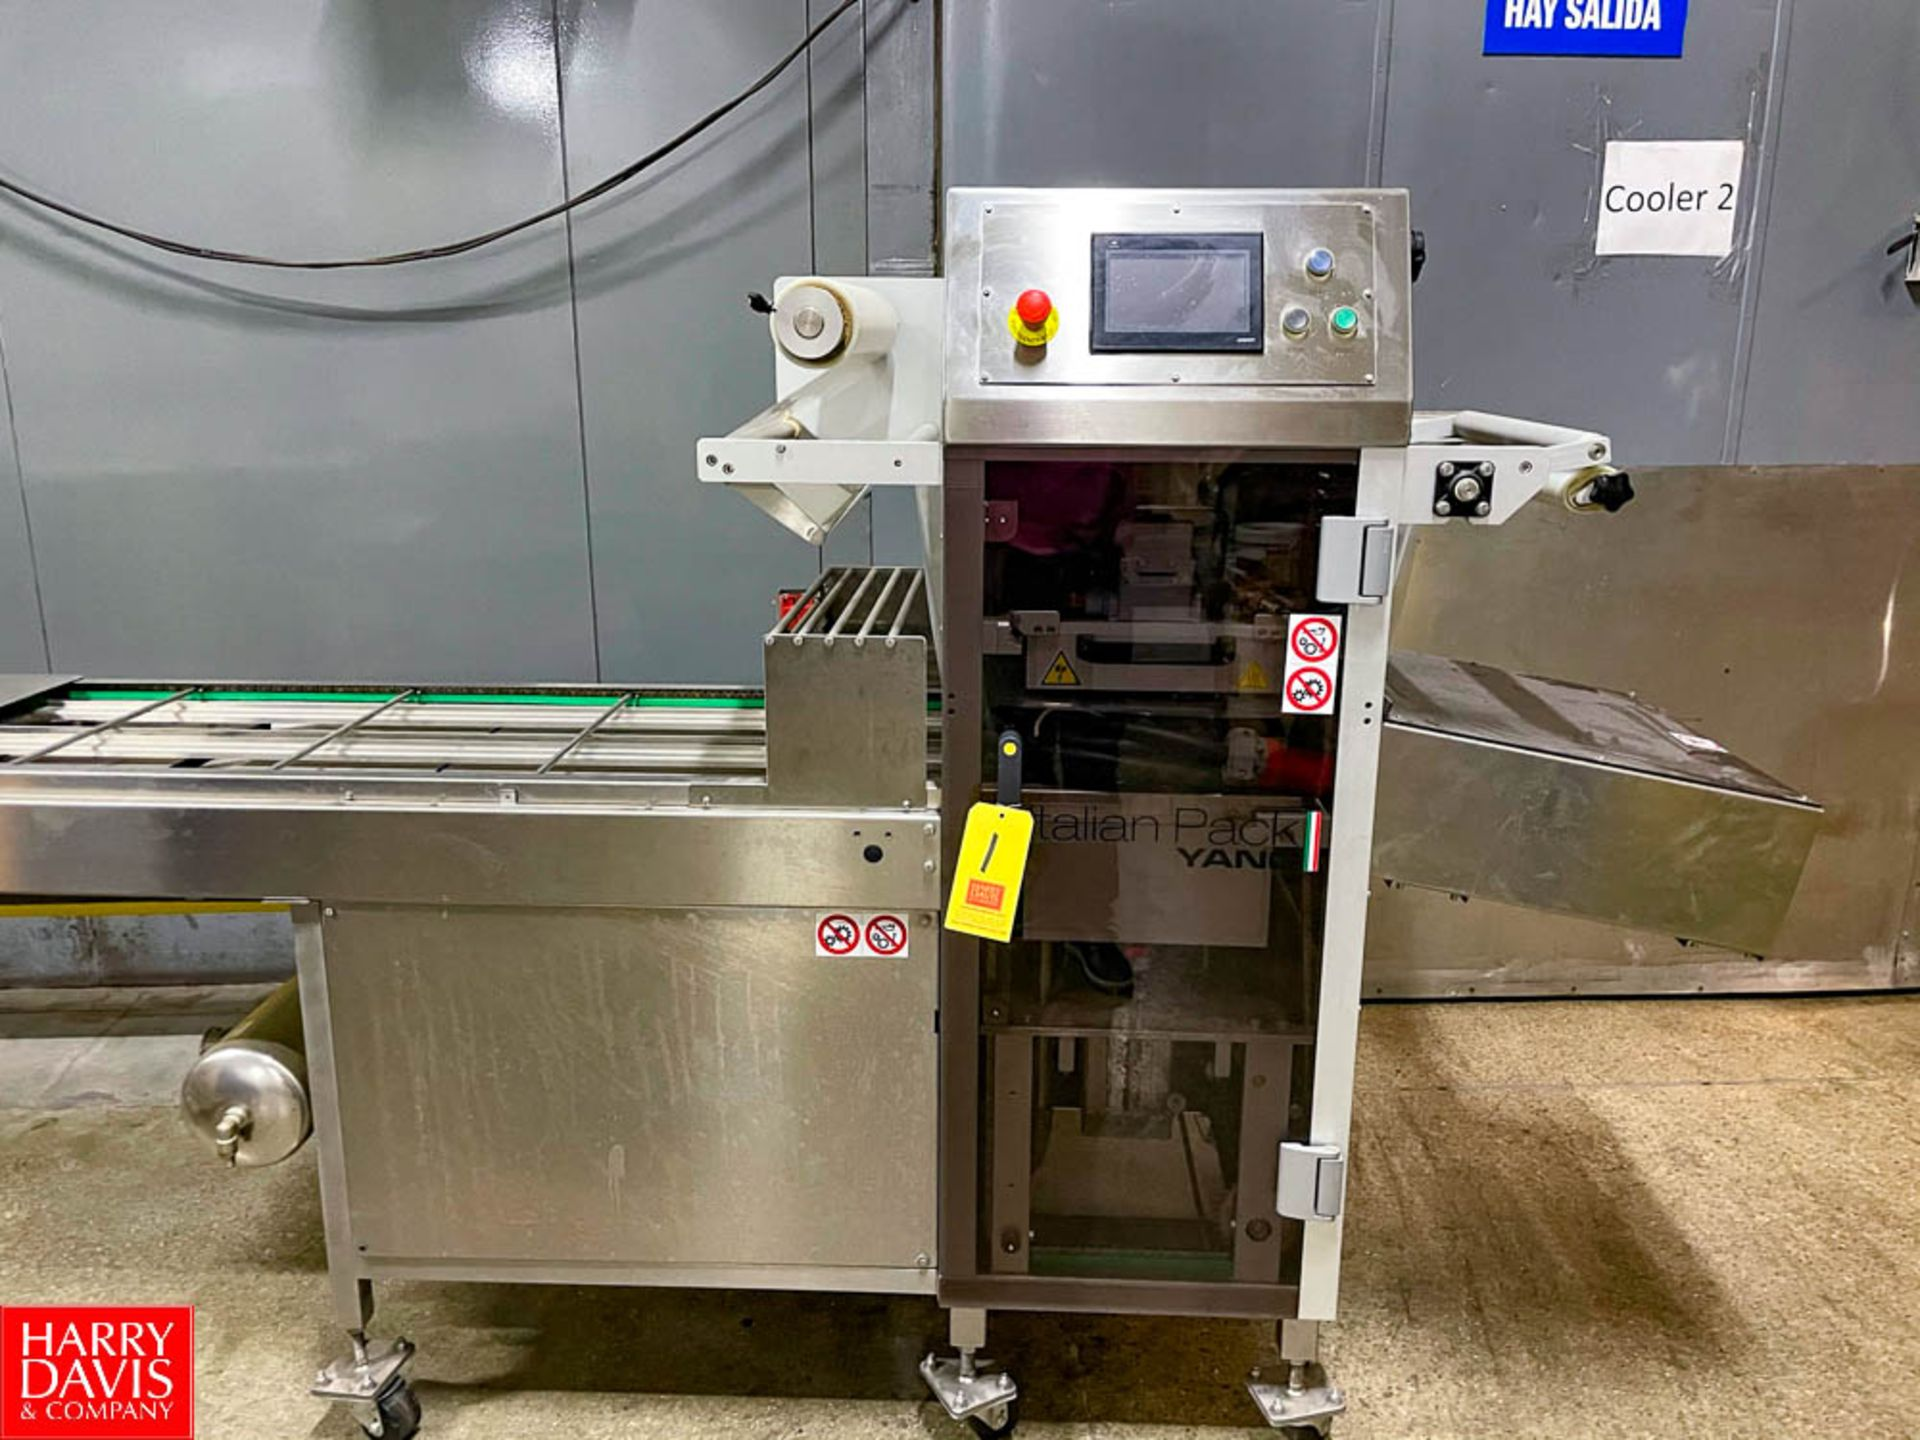 2015 Italian Pack Fully Automated Tray Packer Model: Perseus SN:159520 Type Perv060SI1.65URBFpv - Image 5 of 5